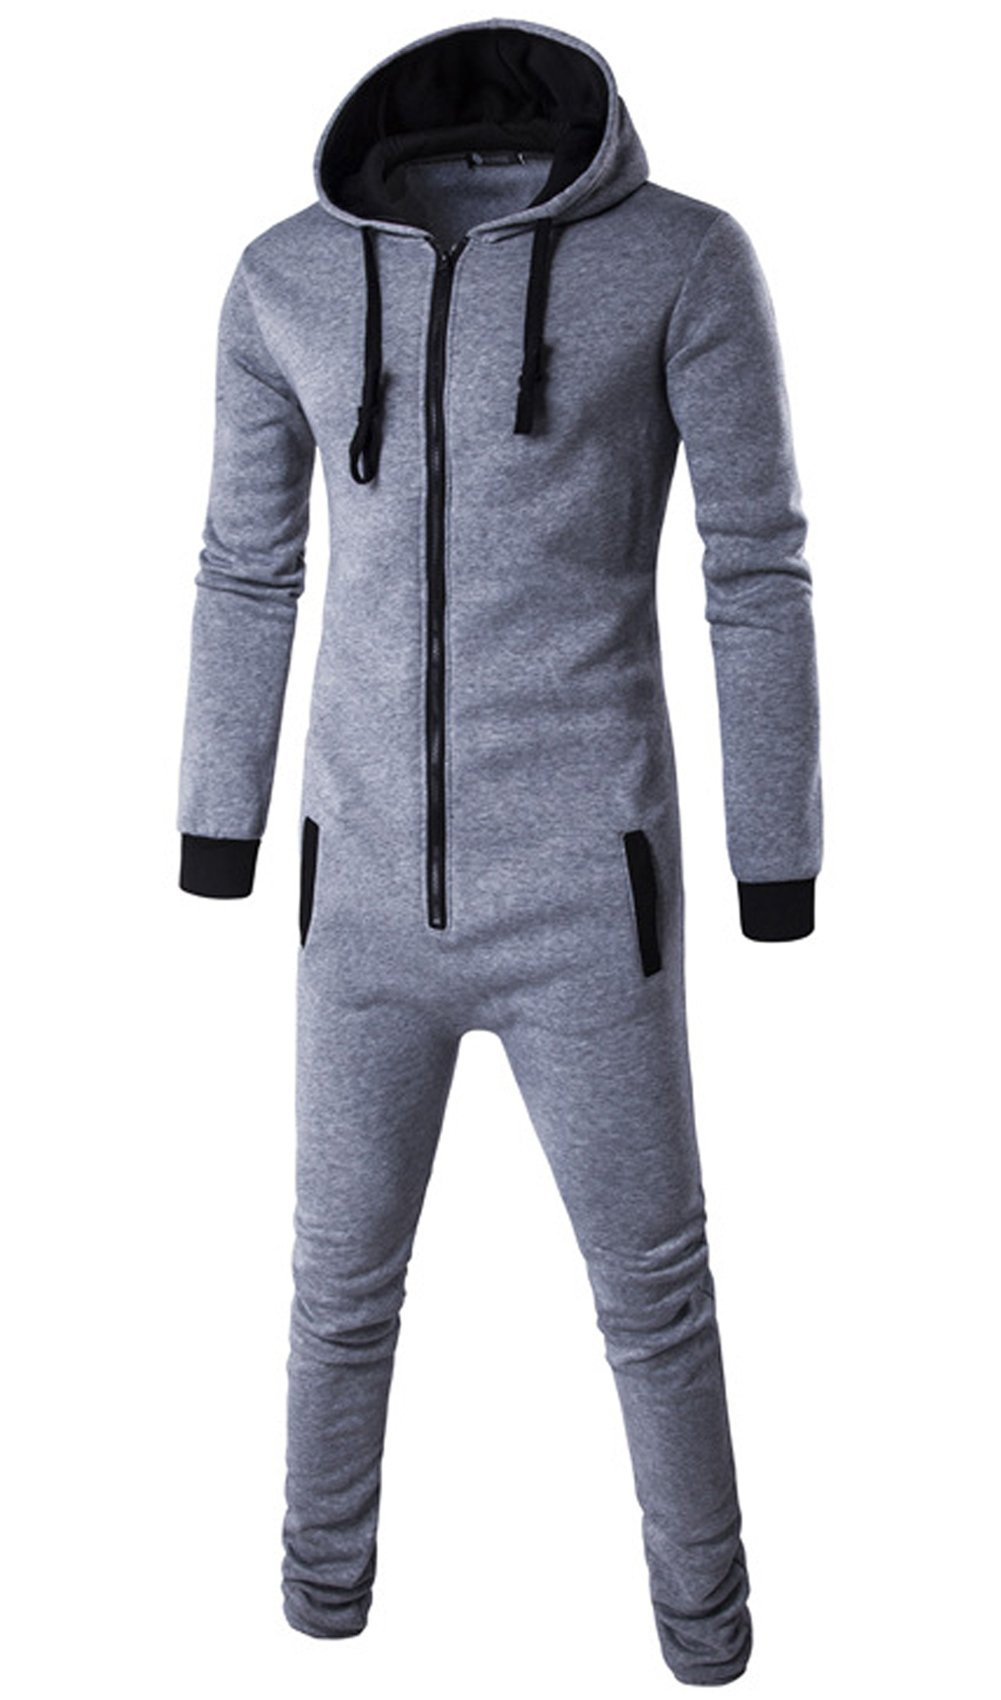 JOKHOO Men's Fashion Hooded Jumpsuit One Piece Playsuit